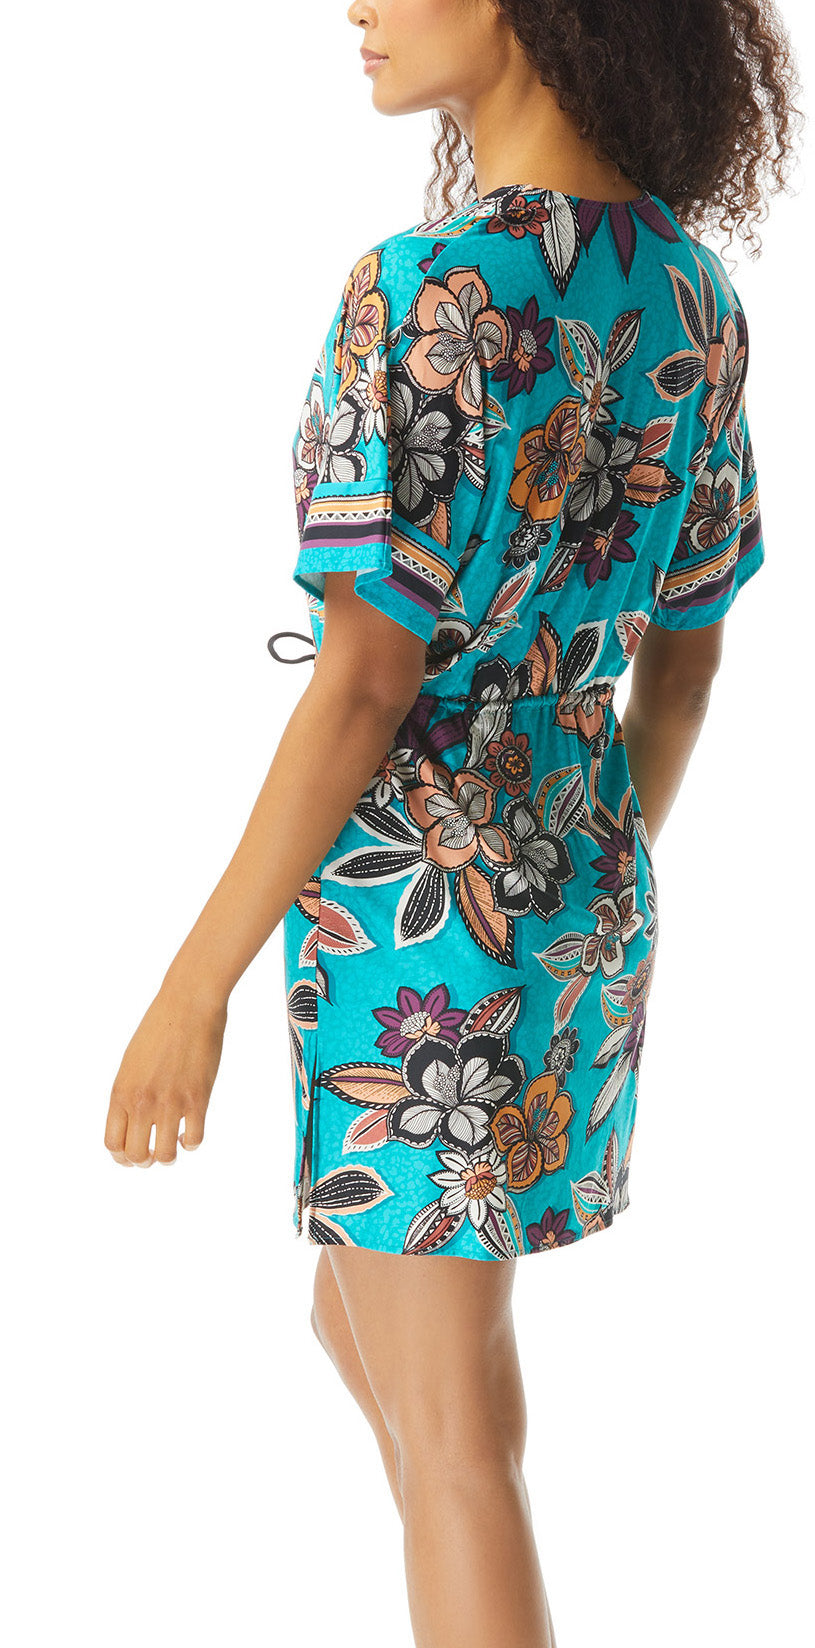 Caftan Swimsuit Cover Up Deep V-Neck 3/4 Length Kimono Sleeves Cinched Waist with Shell Tipped Ties Hand Wash Cold, Line Dry Fabric: 91% Nylon / 9% Spandex Product Number: U48039